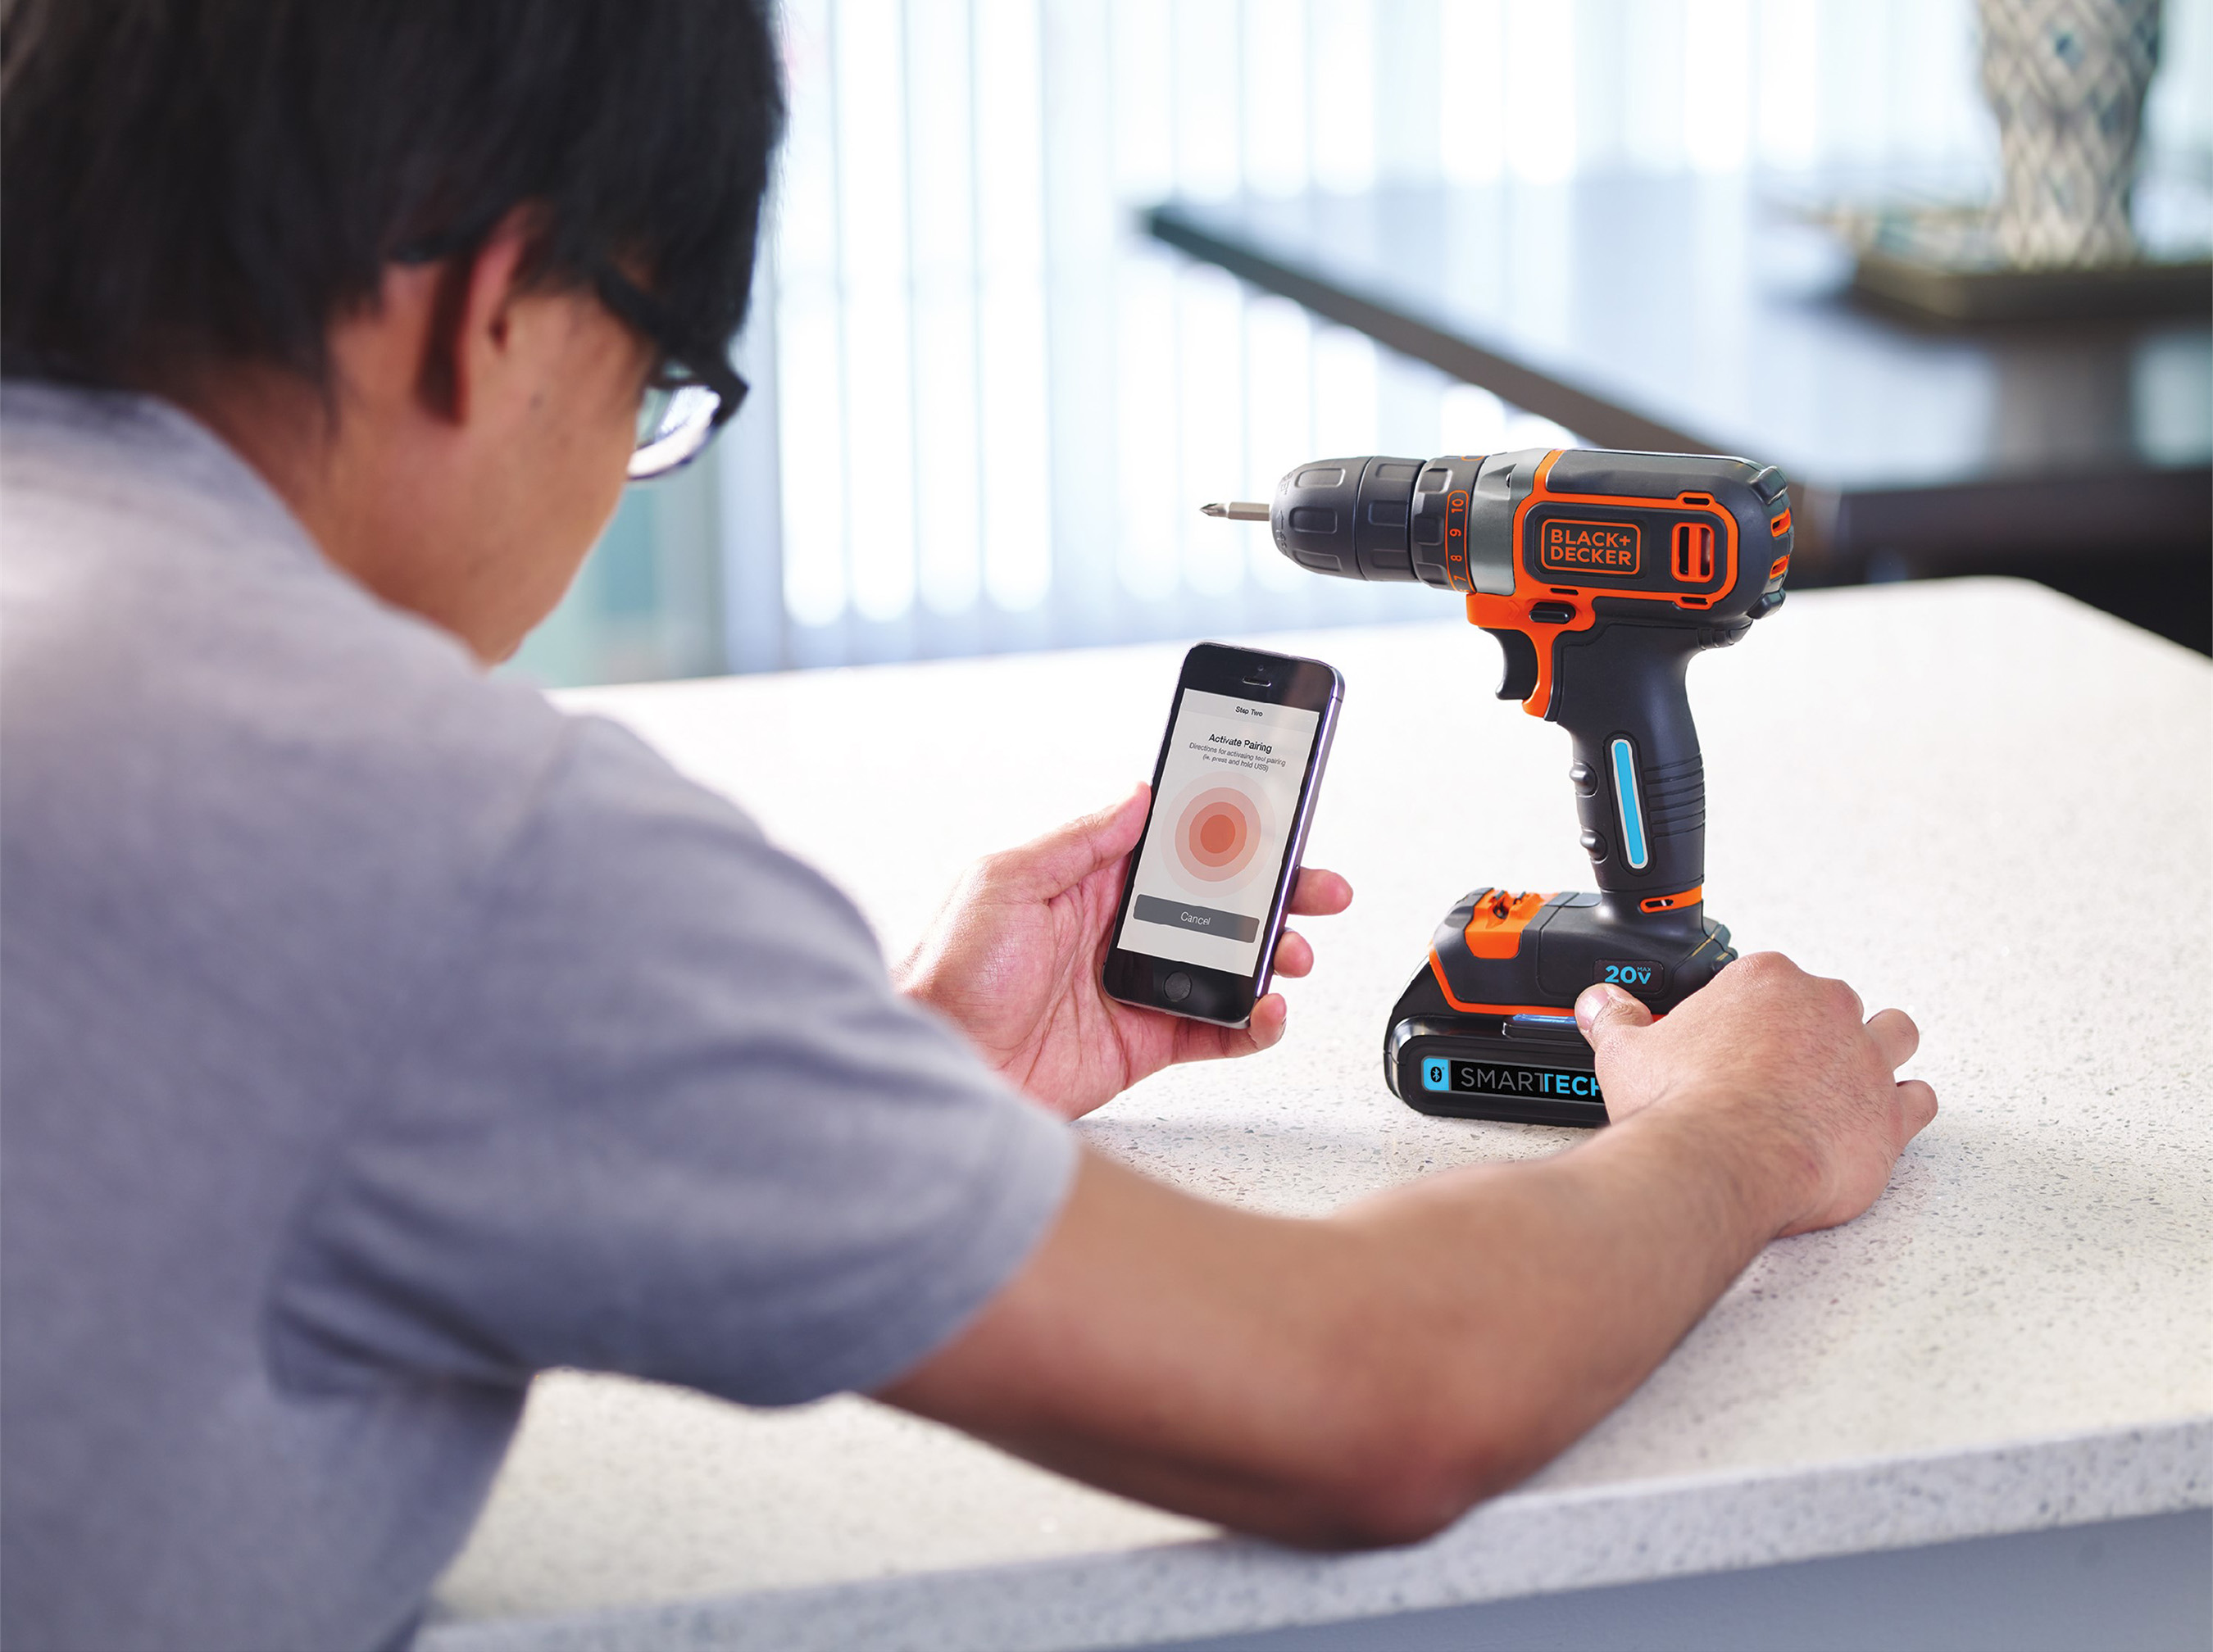 The free BLACK+DECKER™ Mobile App has three components: My Products, Messages, and Projects. Combined with the new SMARTECH™ Battery USB charging feature, the app and batteries connect tools with technology to enhance the DIY experience.